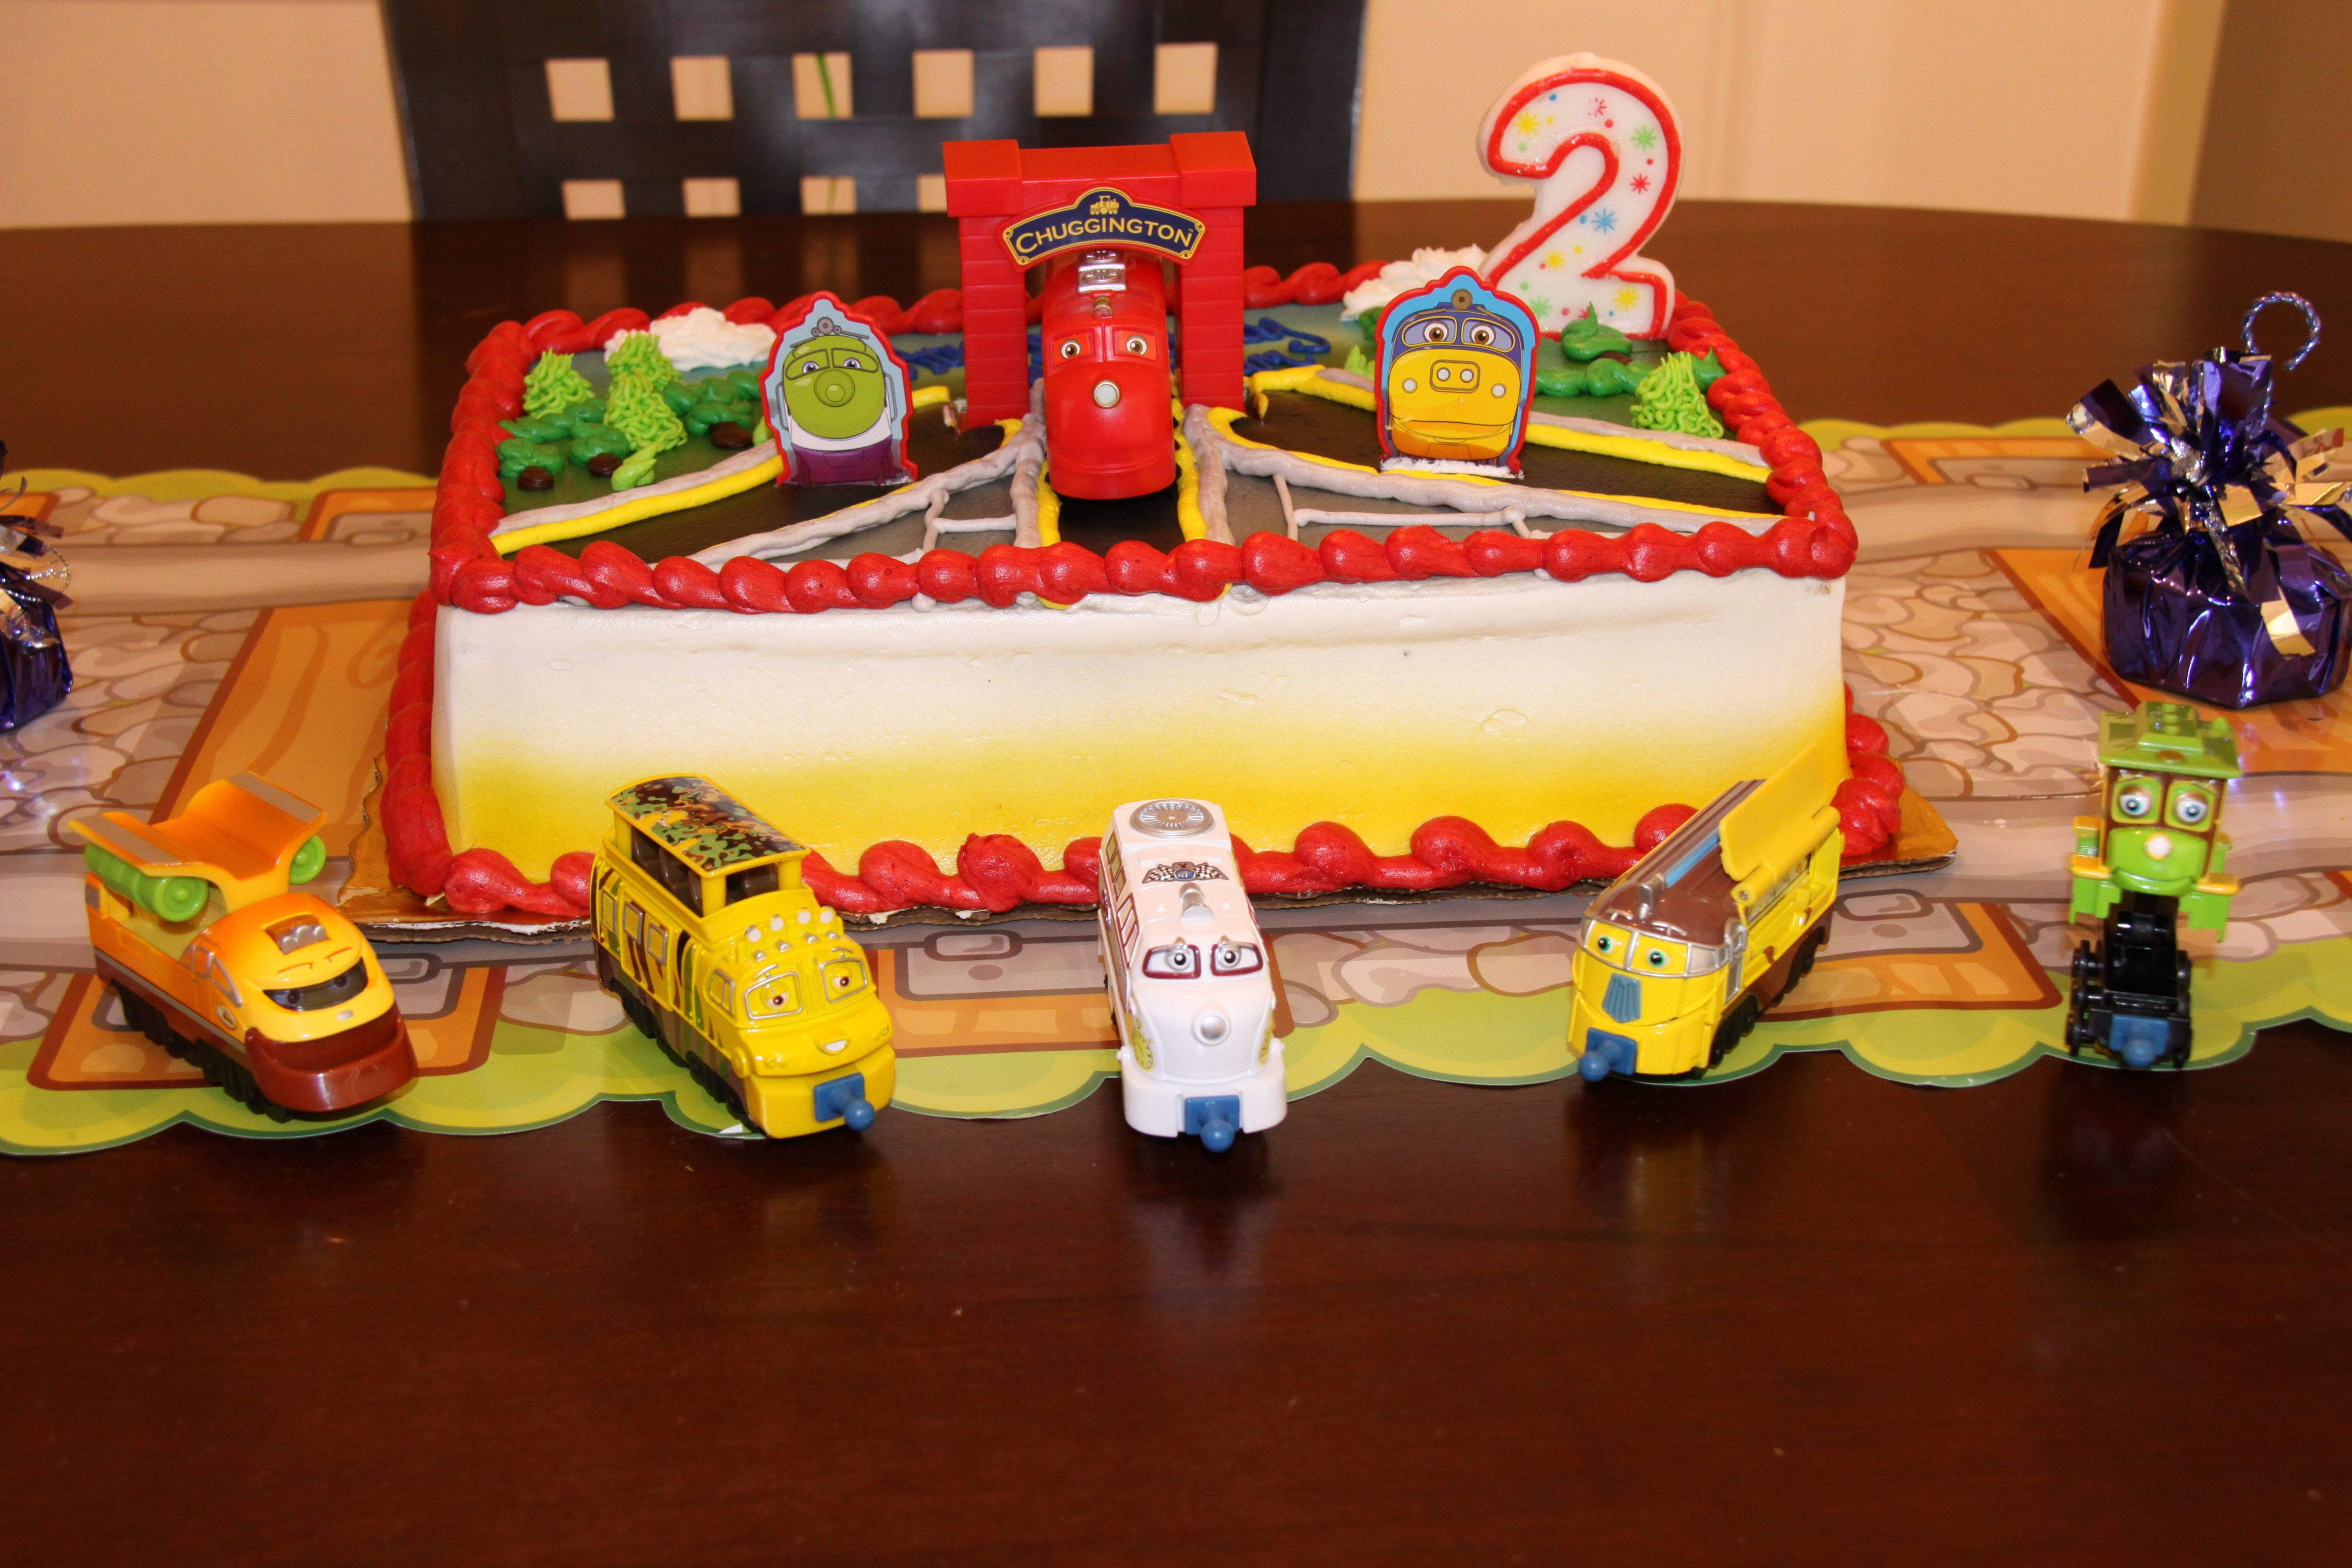 Chuggington Birthday Cake From Publix Bakery Chuggington Train - Chuggington birthday cake